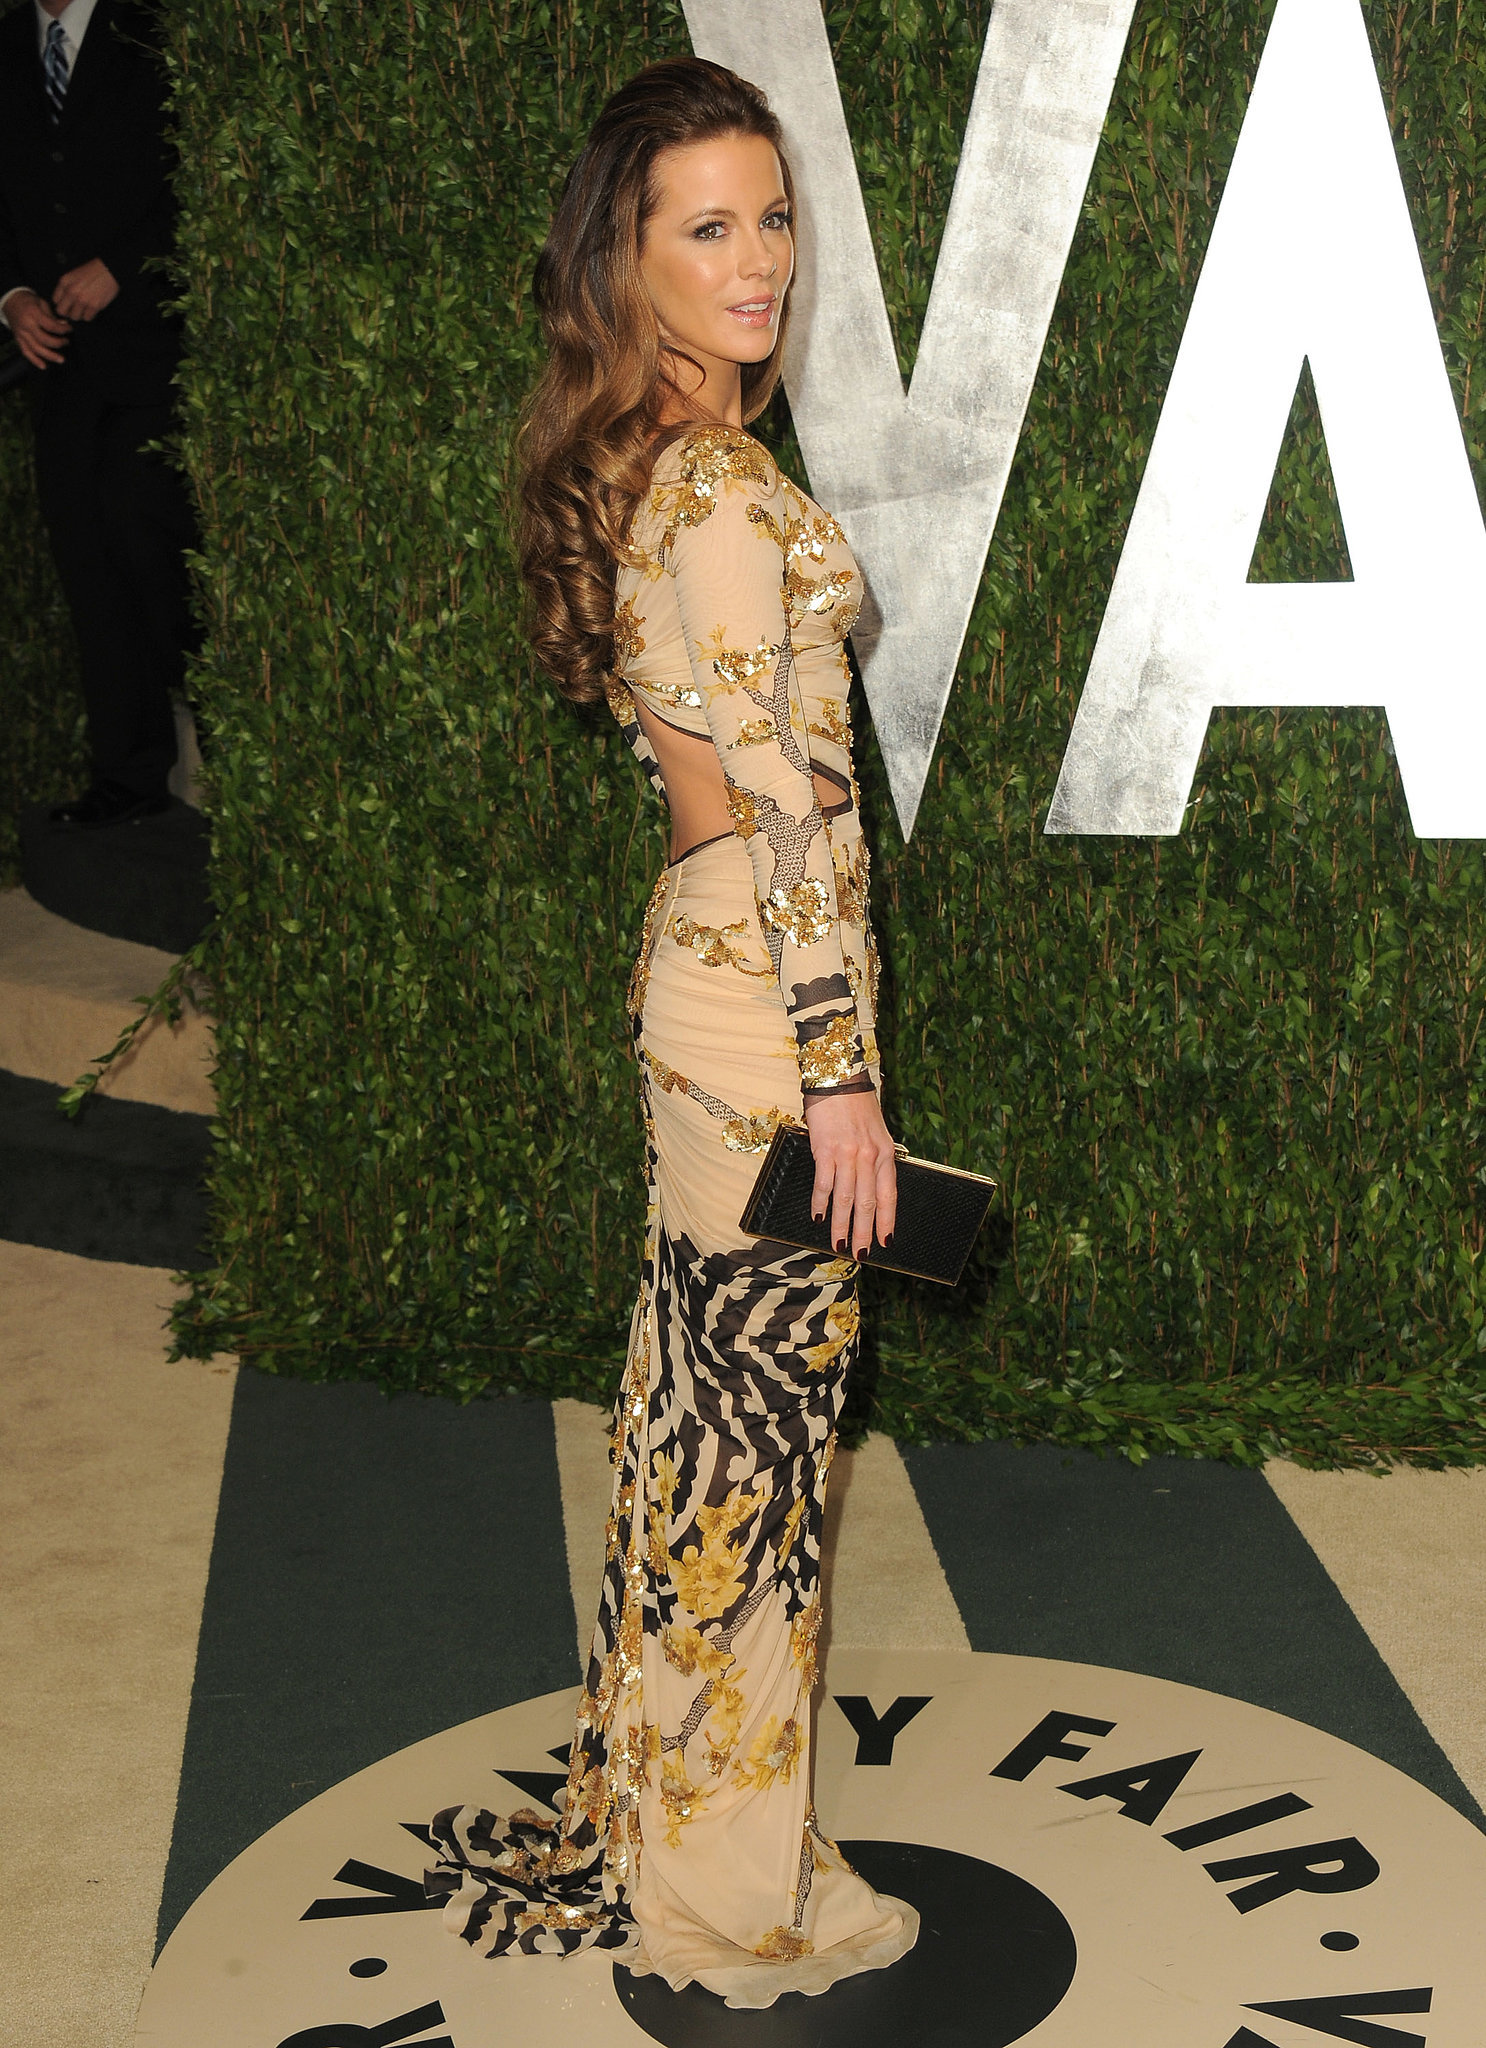 In February, Kate Beckinsale showed some skin in a cutout dress for the  2012 Vanity Fair Oscar party.